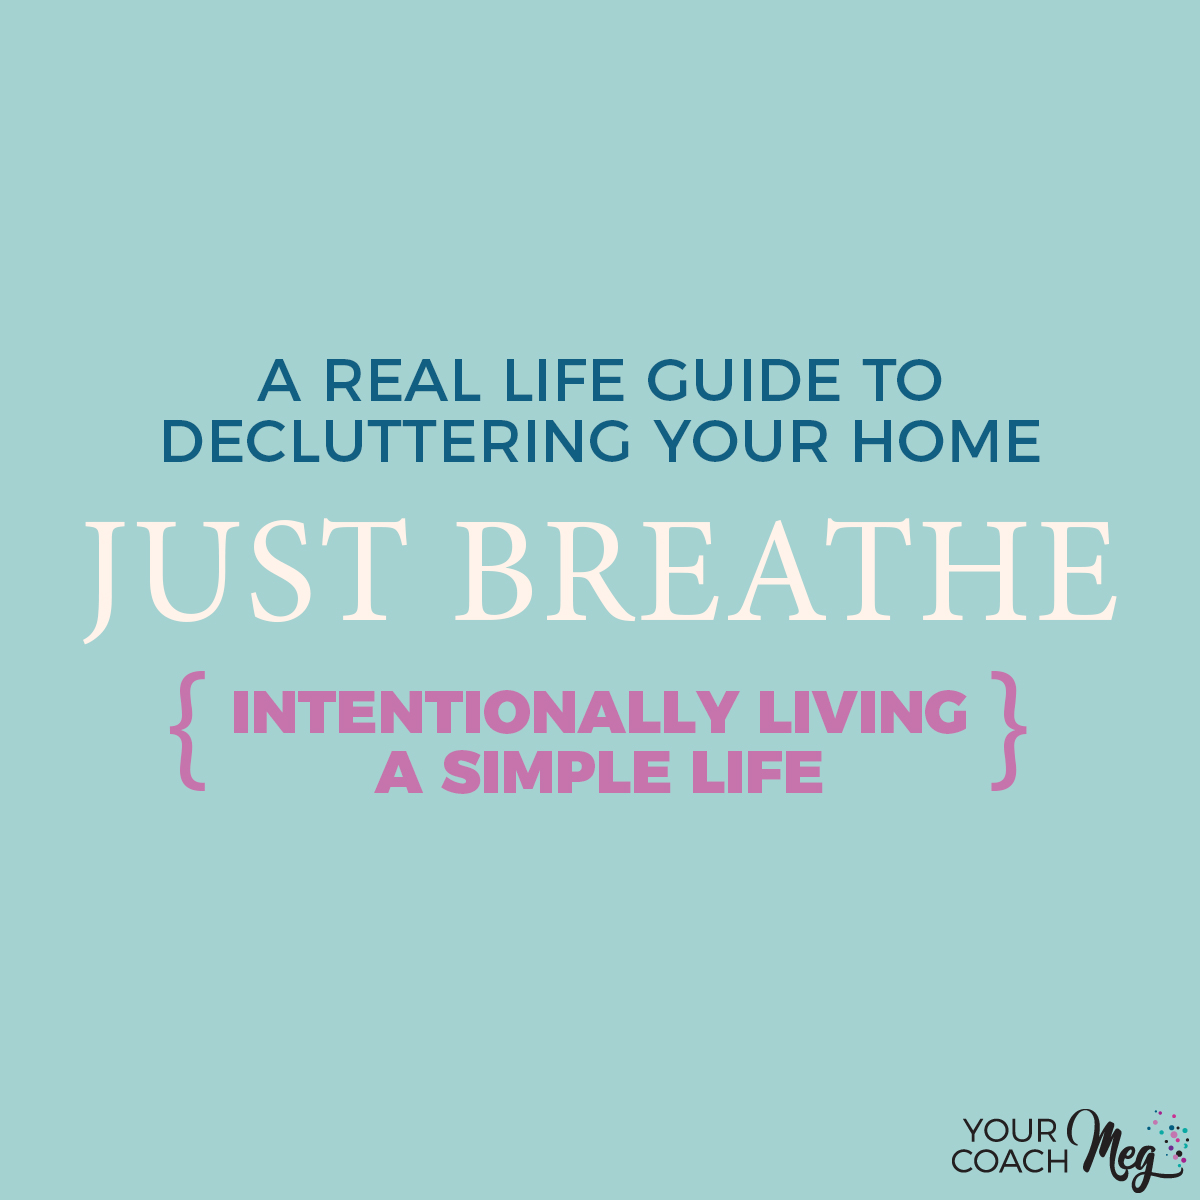 JUST BREATHE: A REAL LIFE GUIDE TO DECLUTTERING YOUR HOME